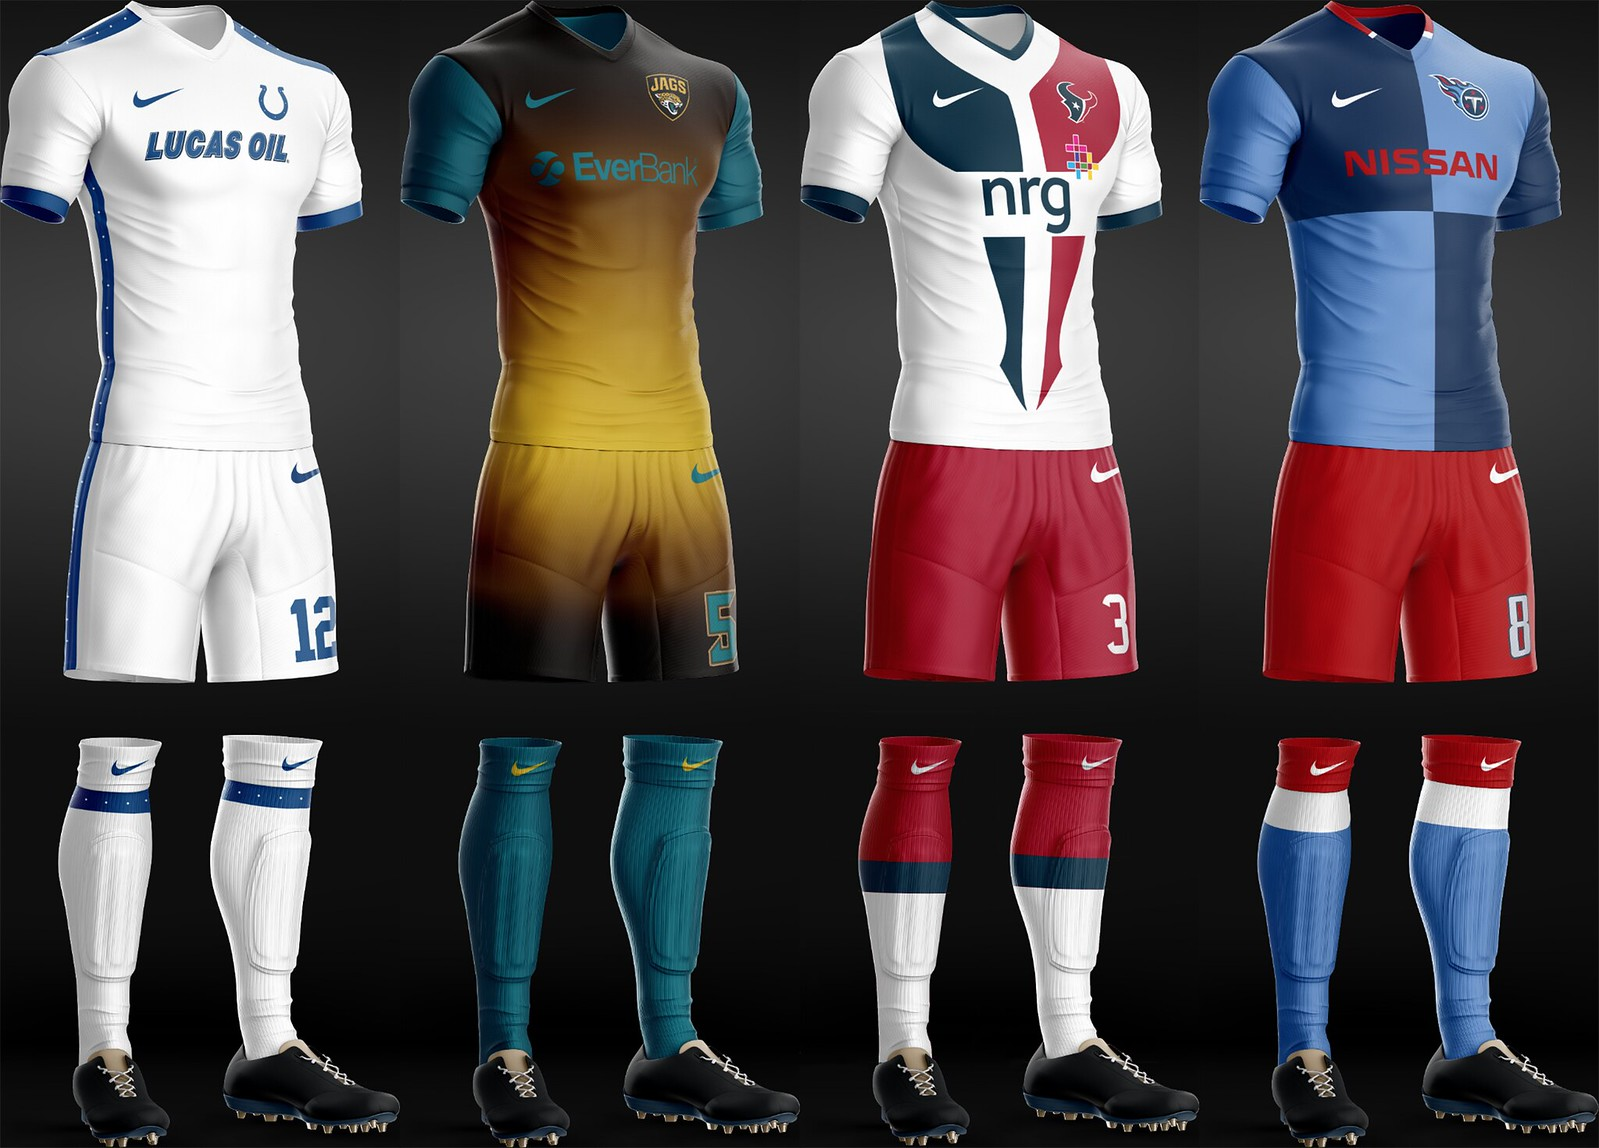 best rated soccer jerseys 2016 throwback mlb jerseys for sale